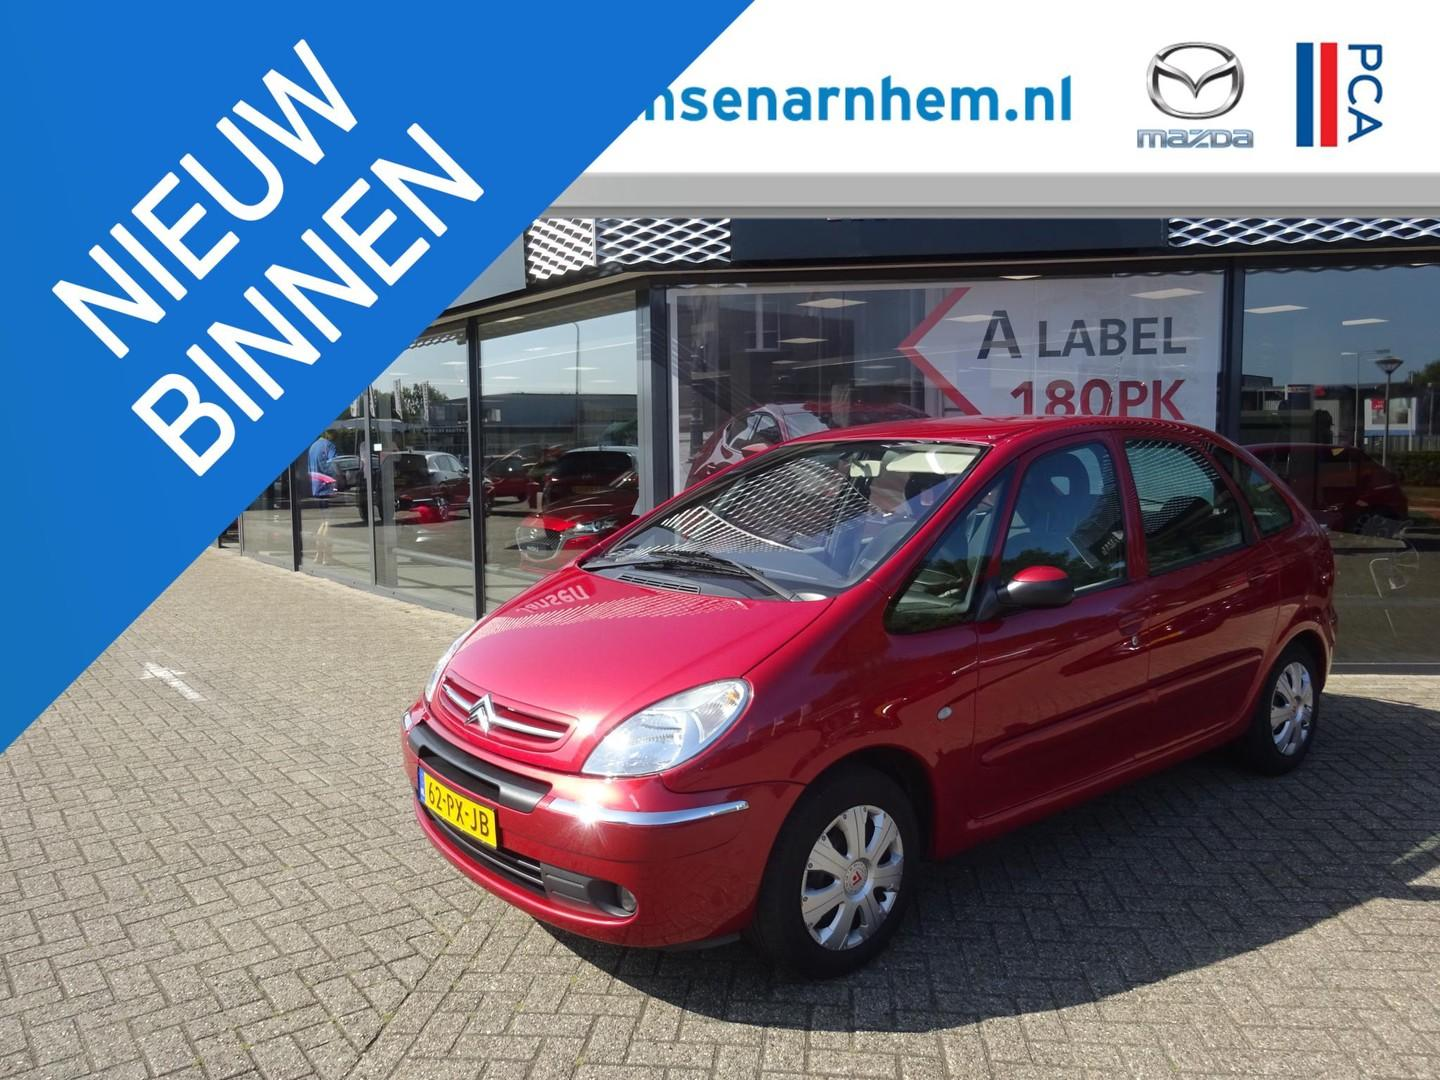 Citroën Xsara picasso 2.0i-16v image , automaat, trekhaak, cruise control, climate control